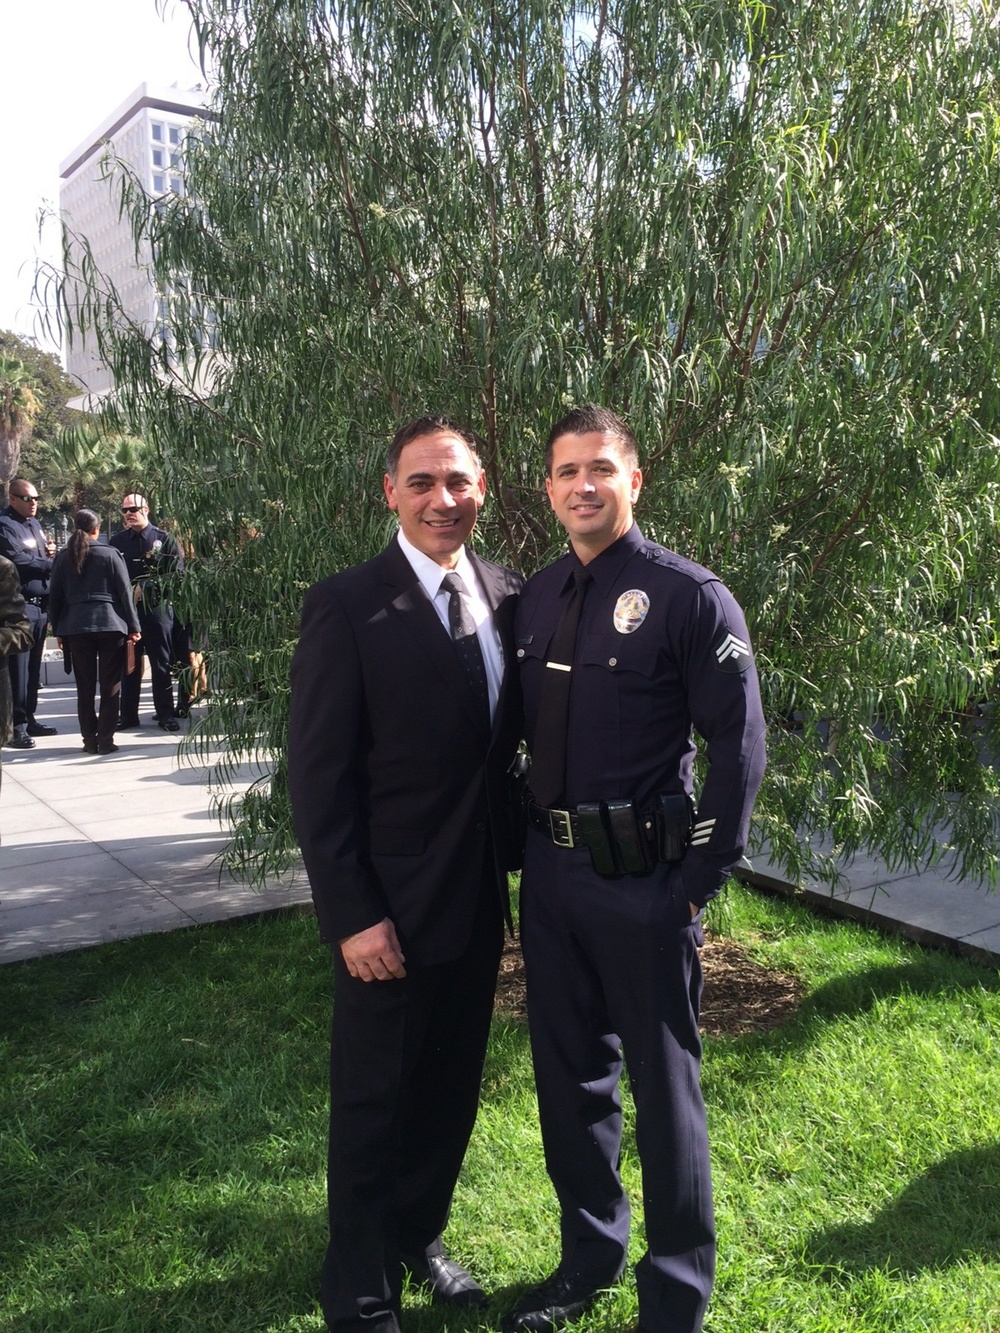 Det. Sam Marullo, in uniform, with Det. Sal LaBarbera